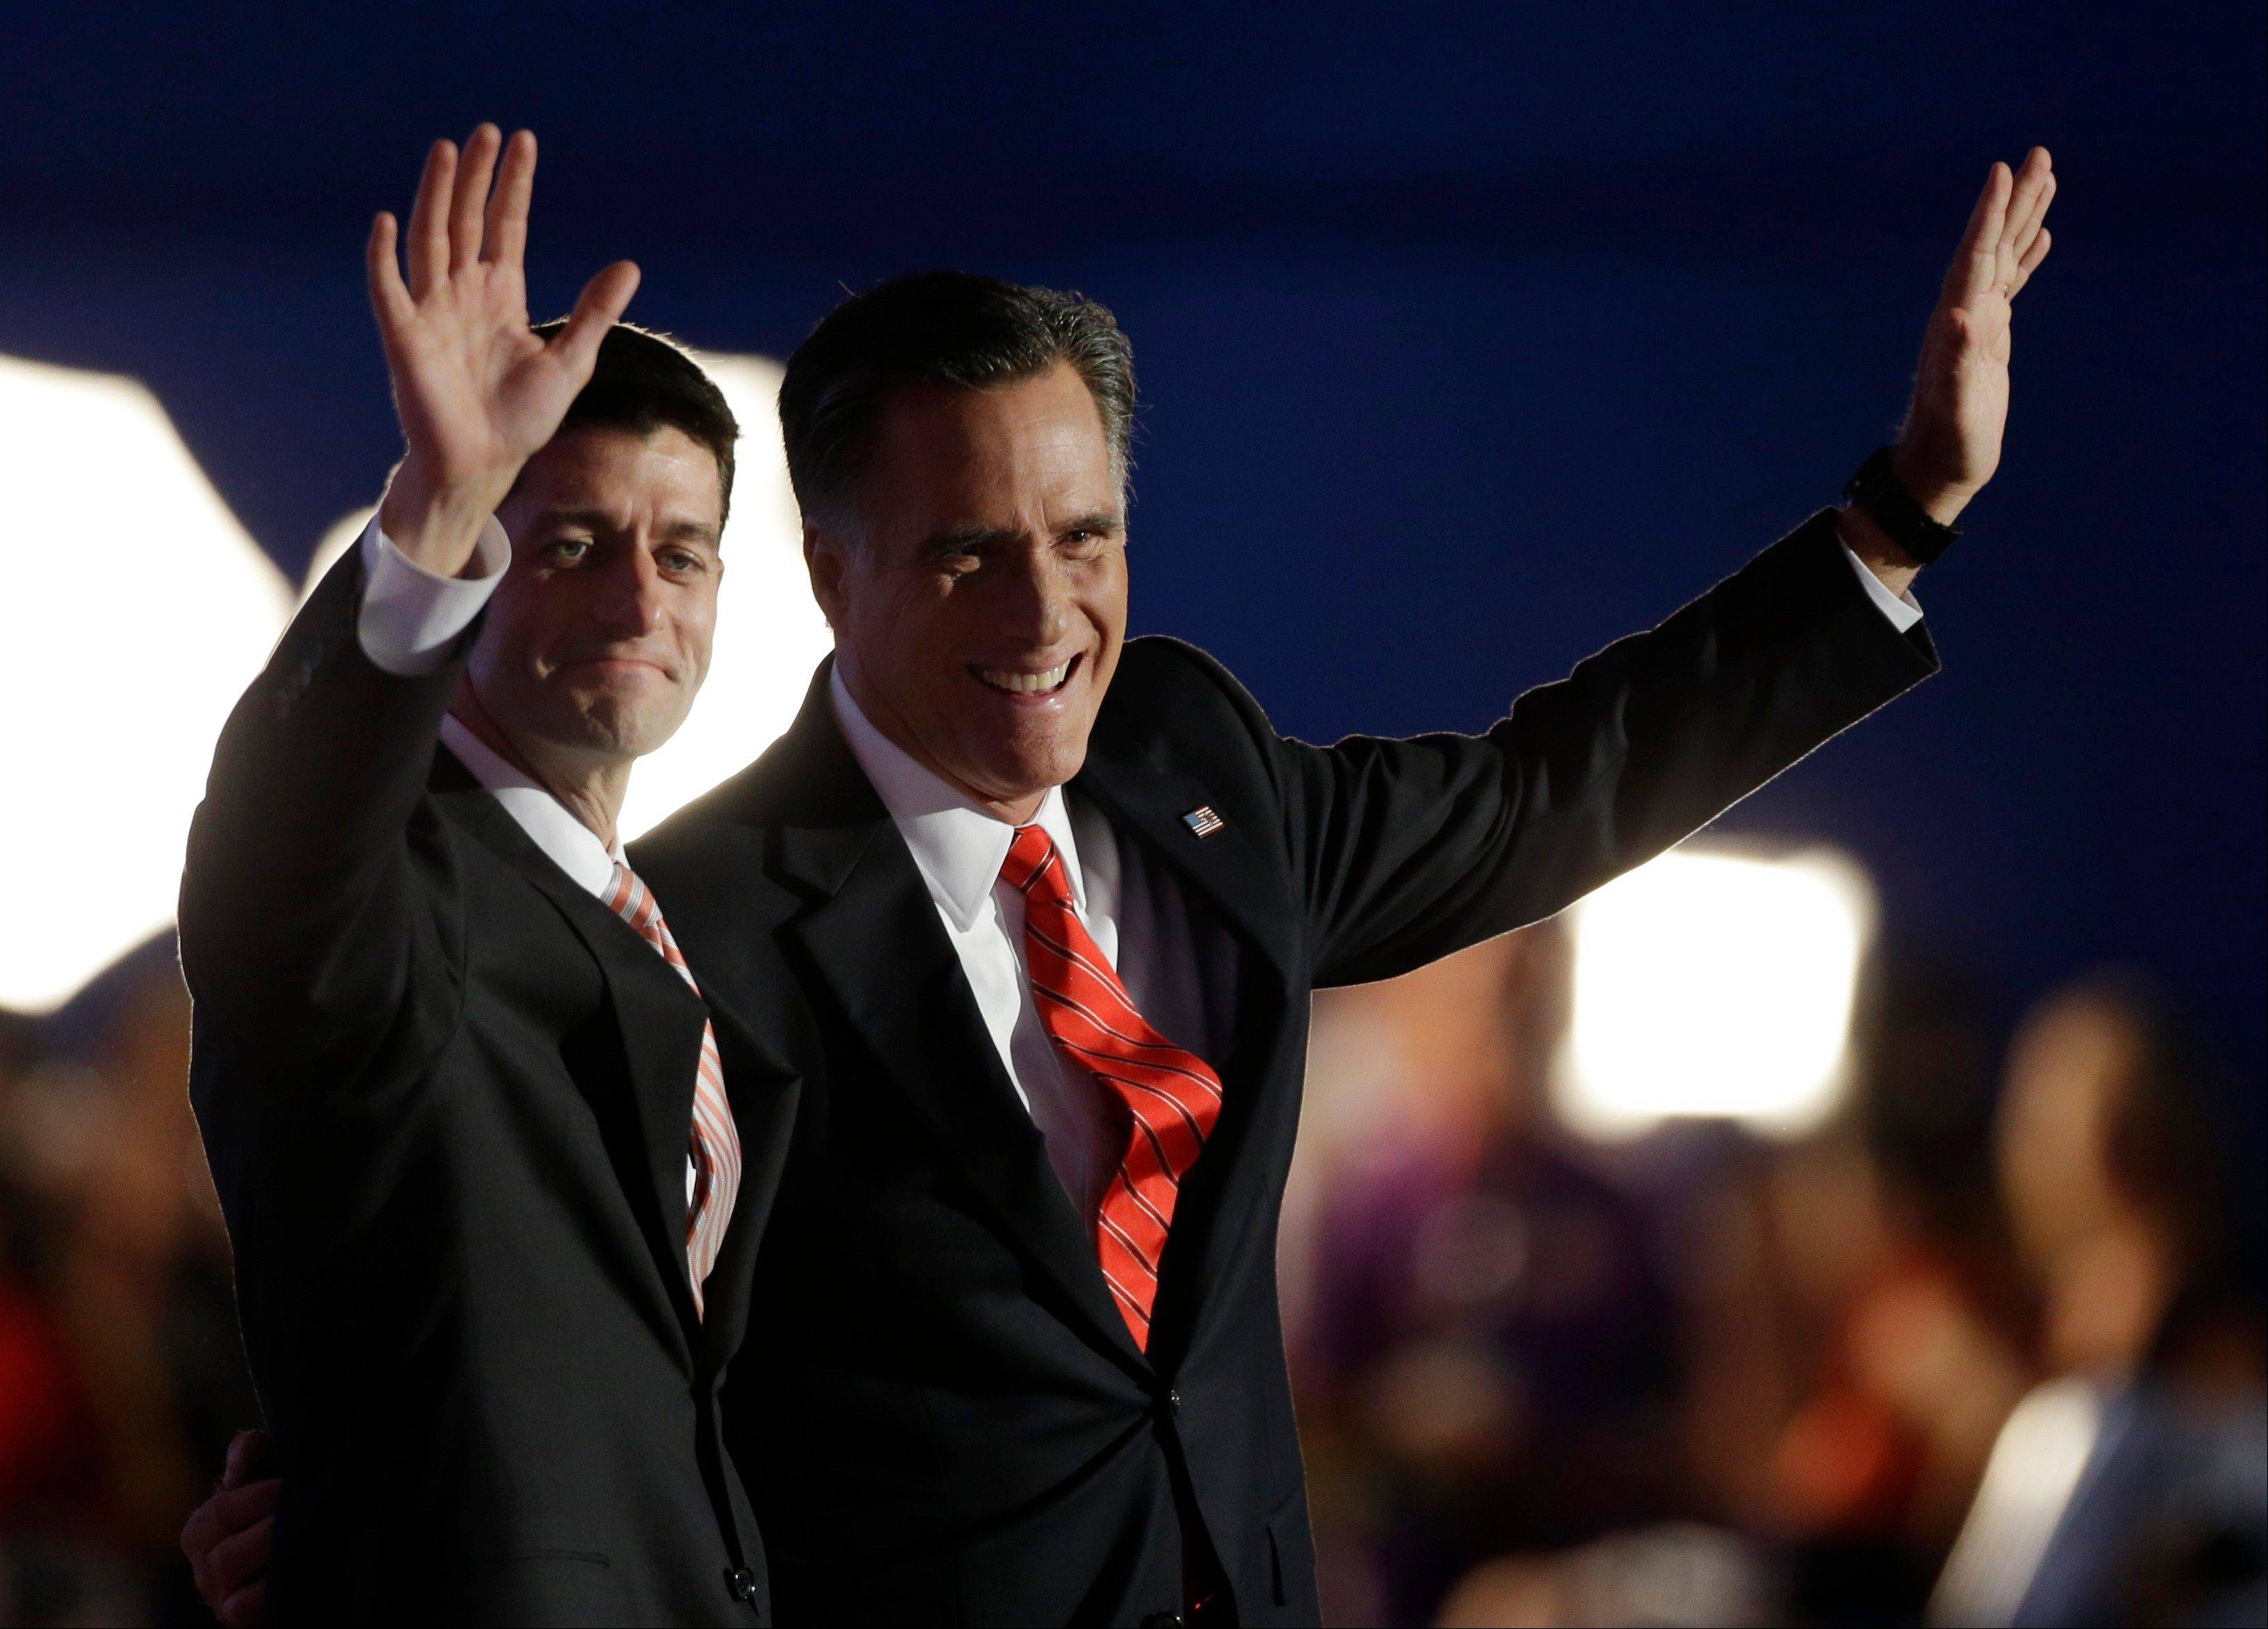 Republican vice presidential nominee, Rep. Paul Ryan, left and Republican presidential nominee Mitt Romney waves to delegates after his speech at the Republican National Convention in Tampa, Fla., on Thursday, Aug. 30, 2012.